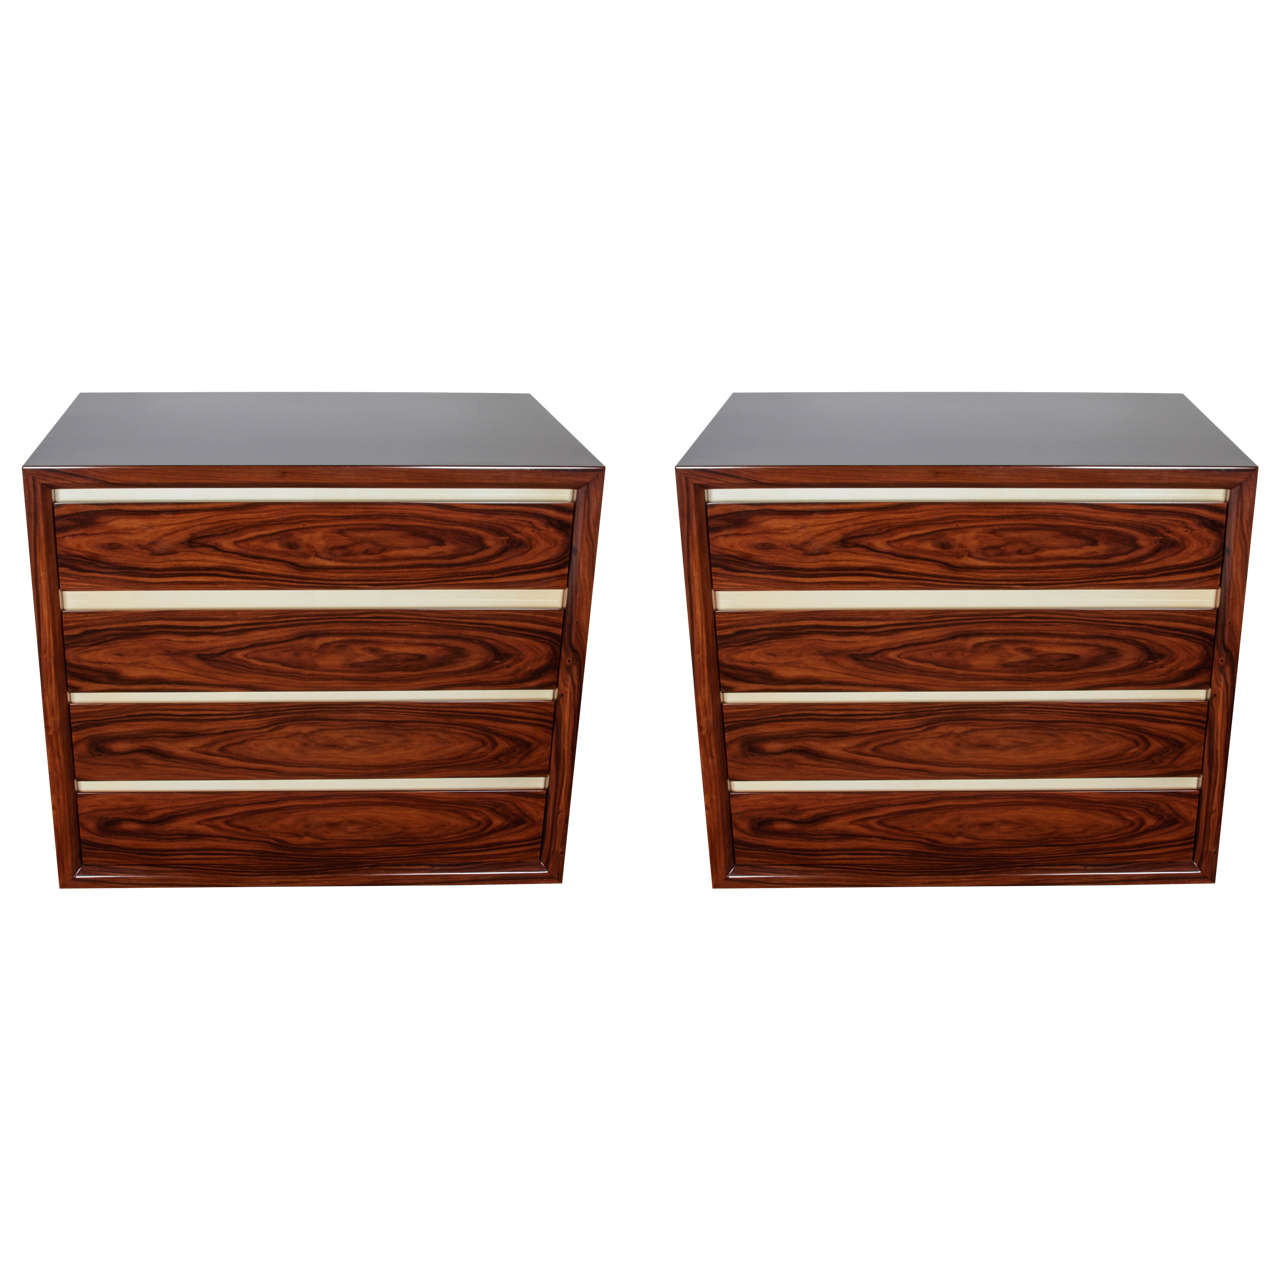 Exquisite pair of chests comprised of book matched rosewood with lacquered parchment (goatskin) trim. Each dresser is fitted with four drawers that feature a soft push-close. The commodes have streamline design and are handsome from all angles.